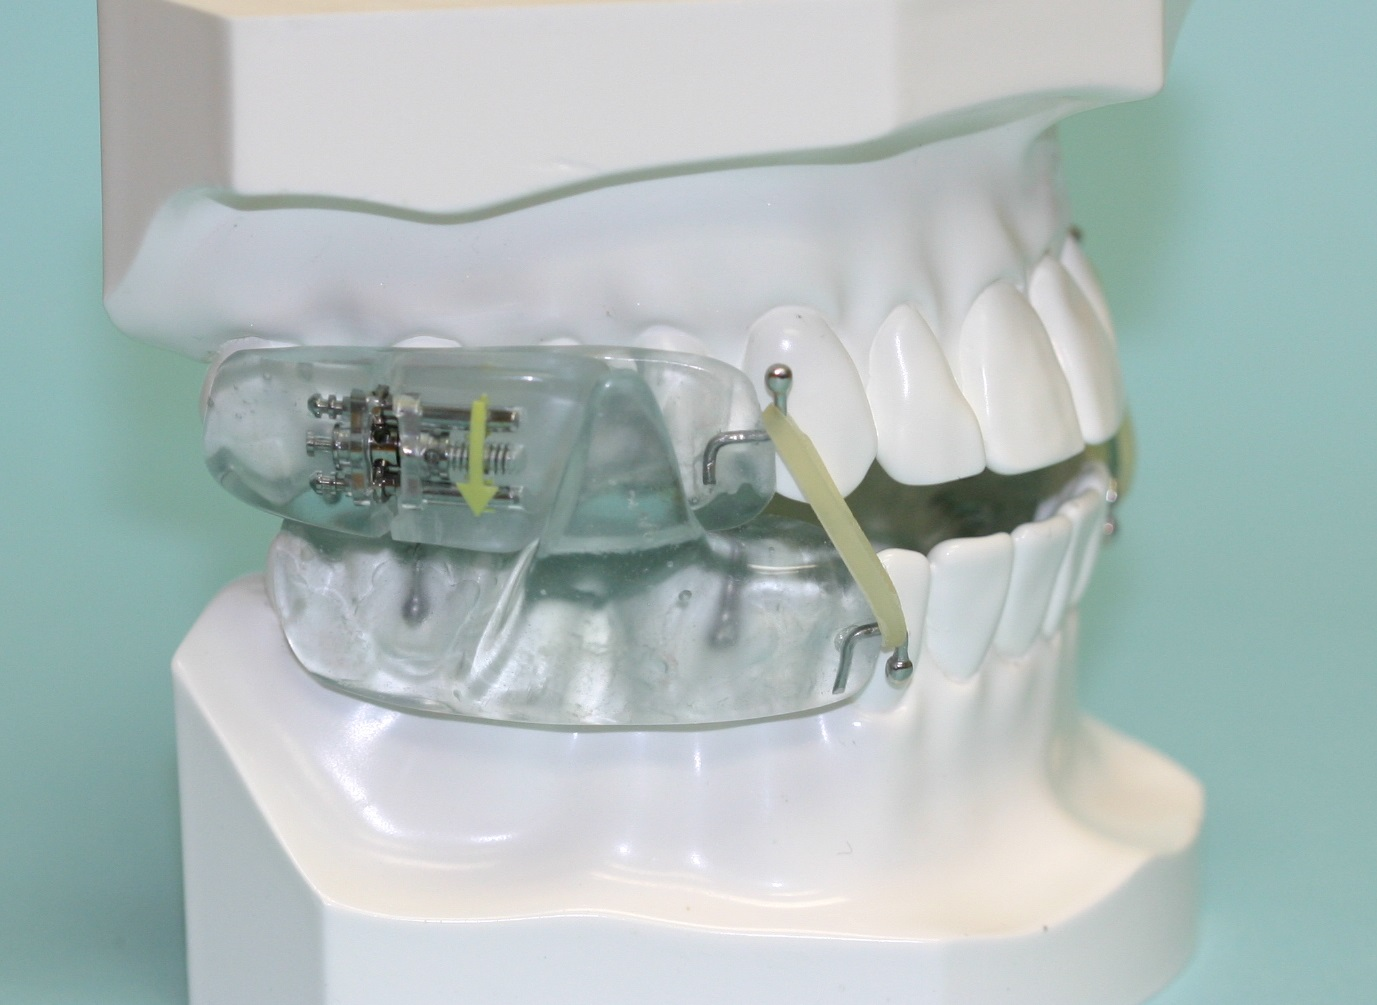 Picture 5: Elastic hooks may be added to the device to help guide the jaw back to its desired position. This is often beneficial for those patients that sleep on their back and keep their mouth open while sleeping.